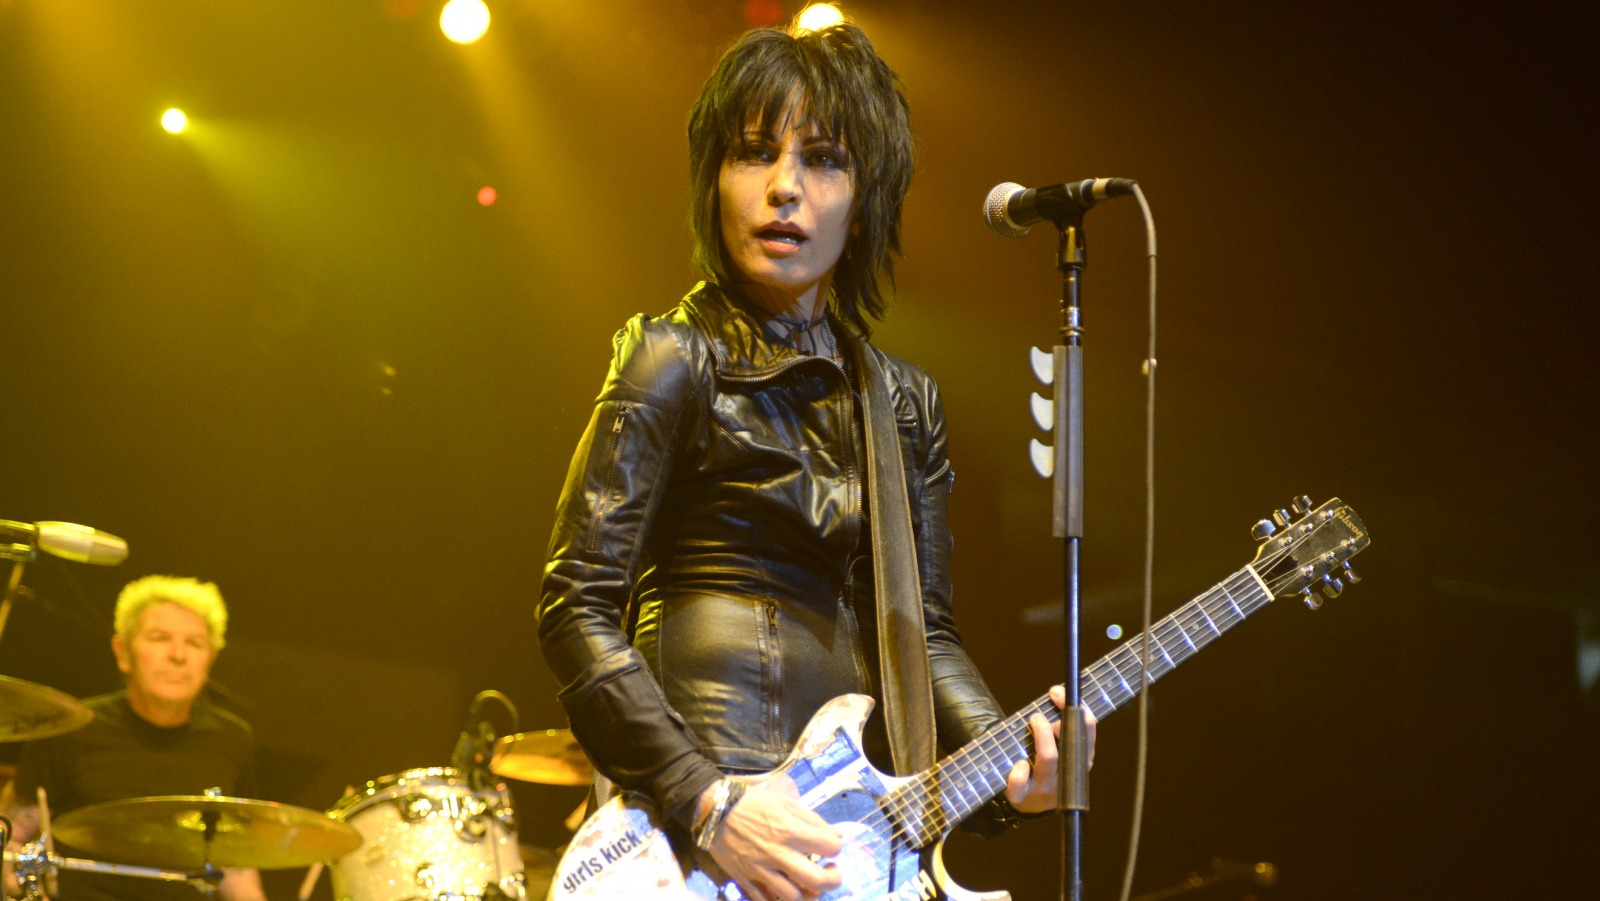 The Real Reason Joan Jett Didn't Want To Be In An All-Women Band